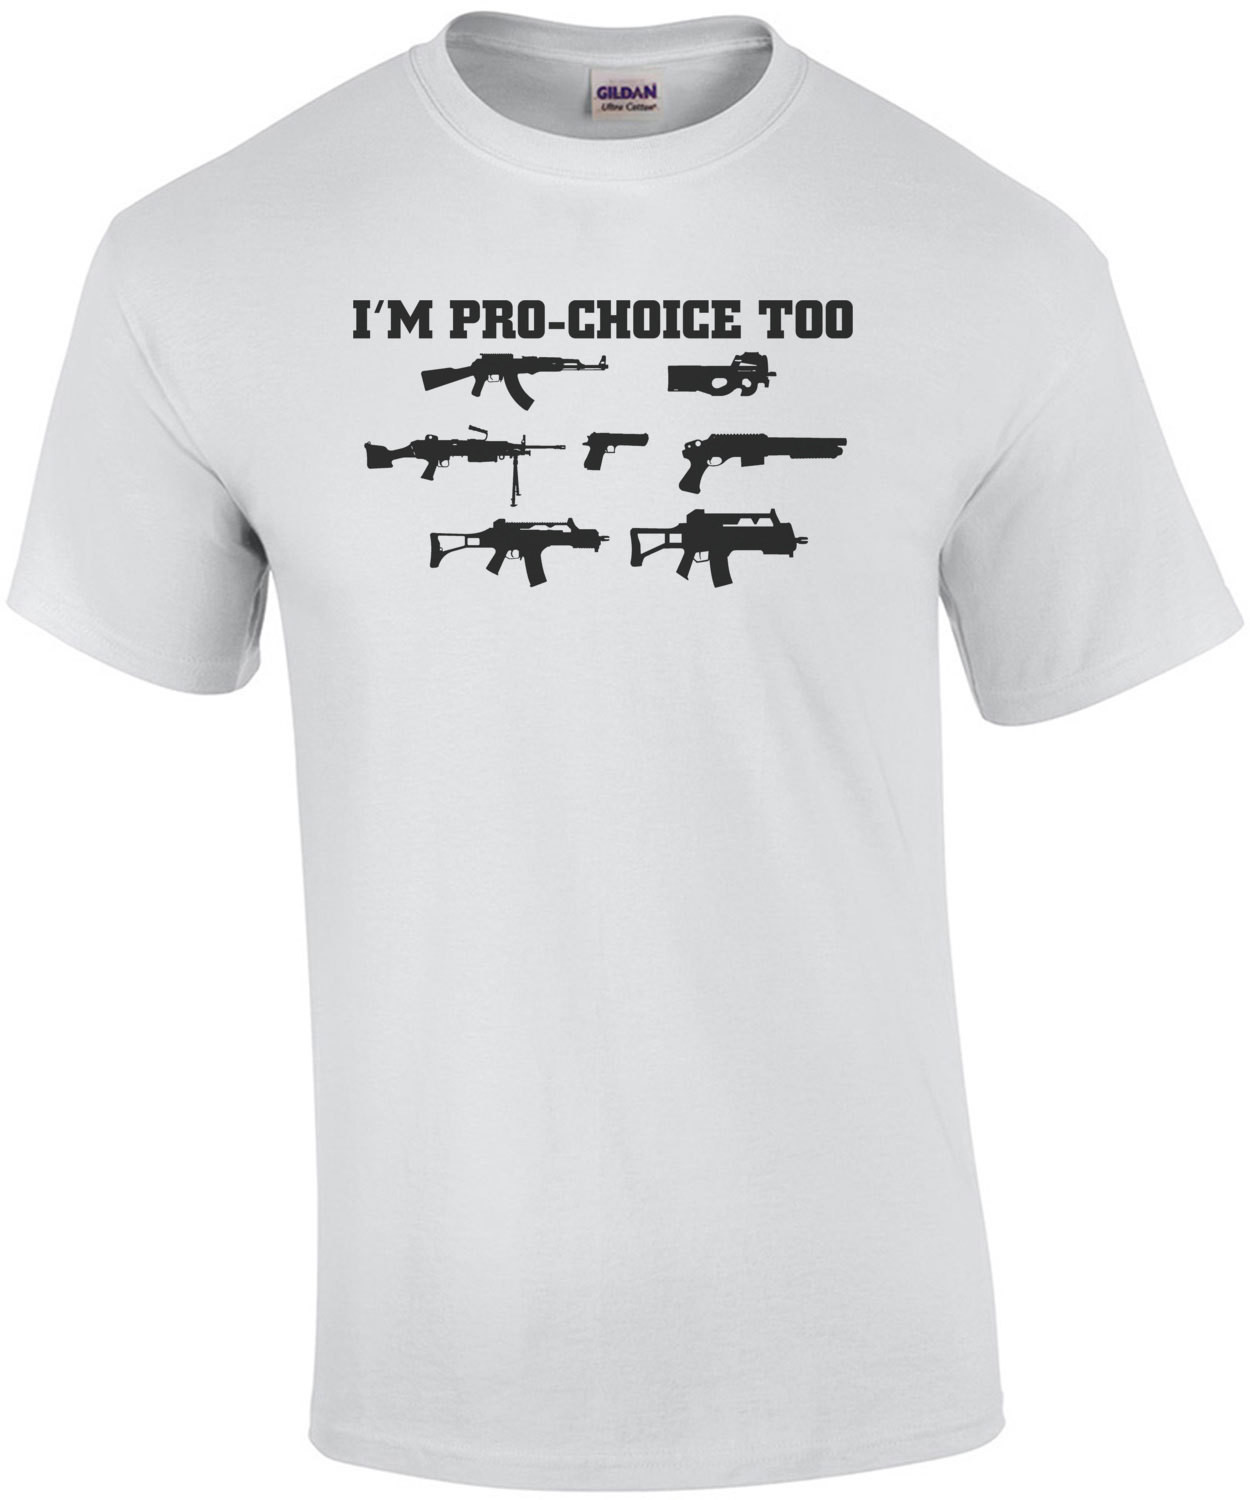 I'm Pro Choice Too Guns T-Shirt